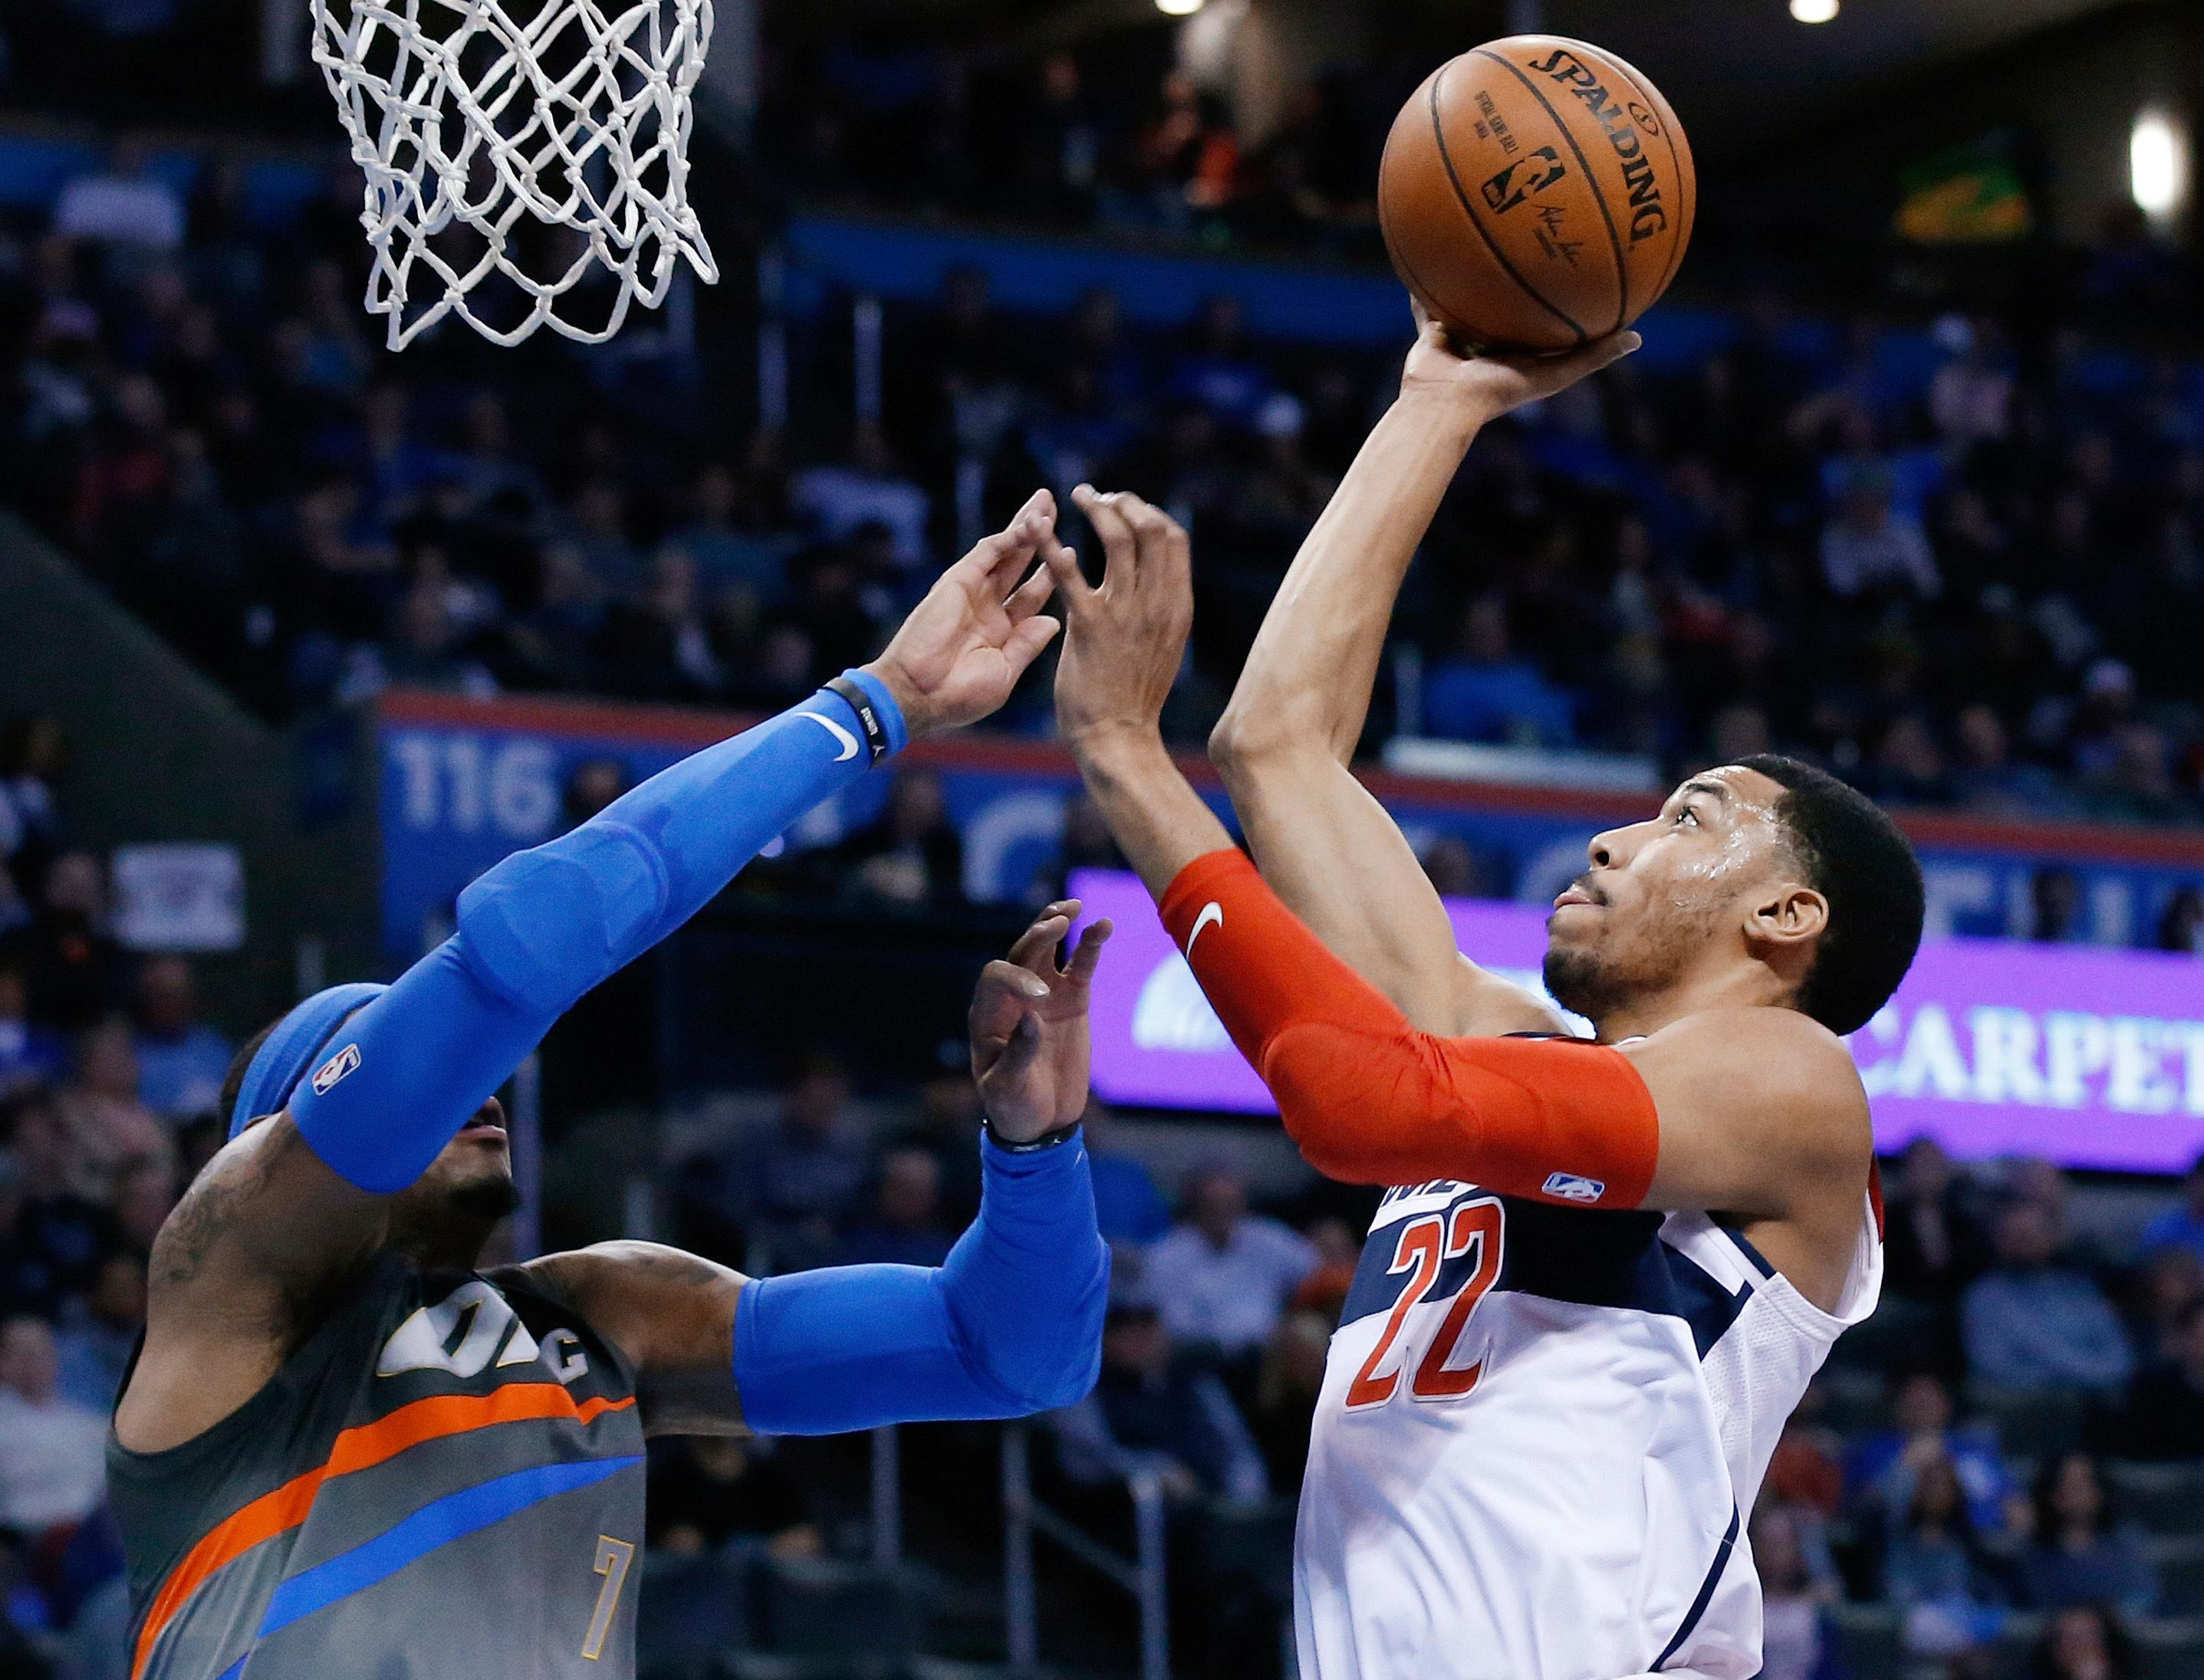 Washington Wizards forward Otto Porter Jr. (22) shoots over Oklahoma City Thunder forward Carmelo Anthony (7) during the first quarter of an NBA basketball game in Oklahoma City, Thursday, Jan. 25, 2018. (AP Photo/Sue Ogrocki)